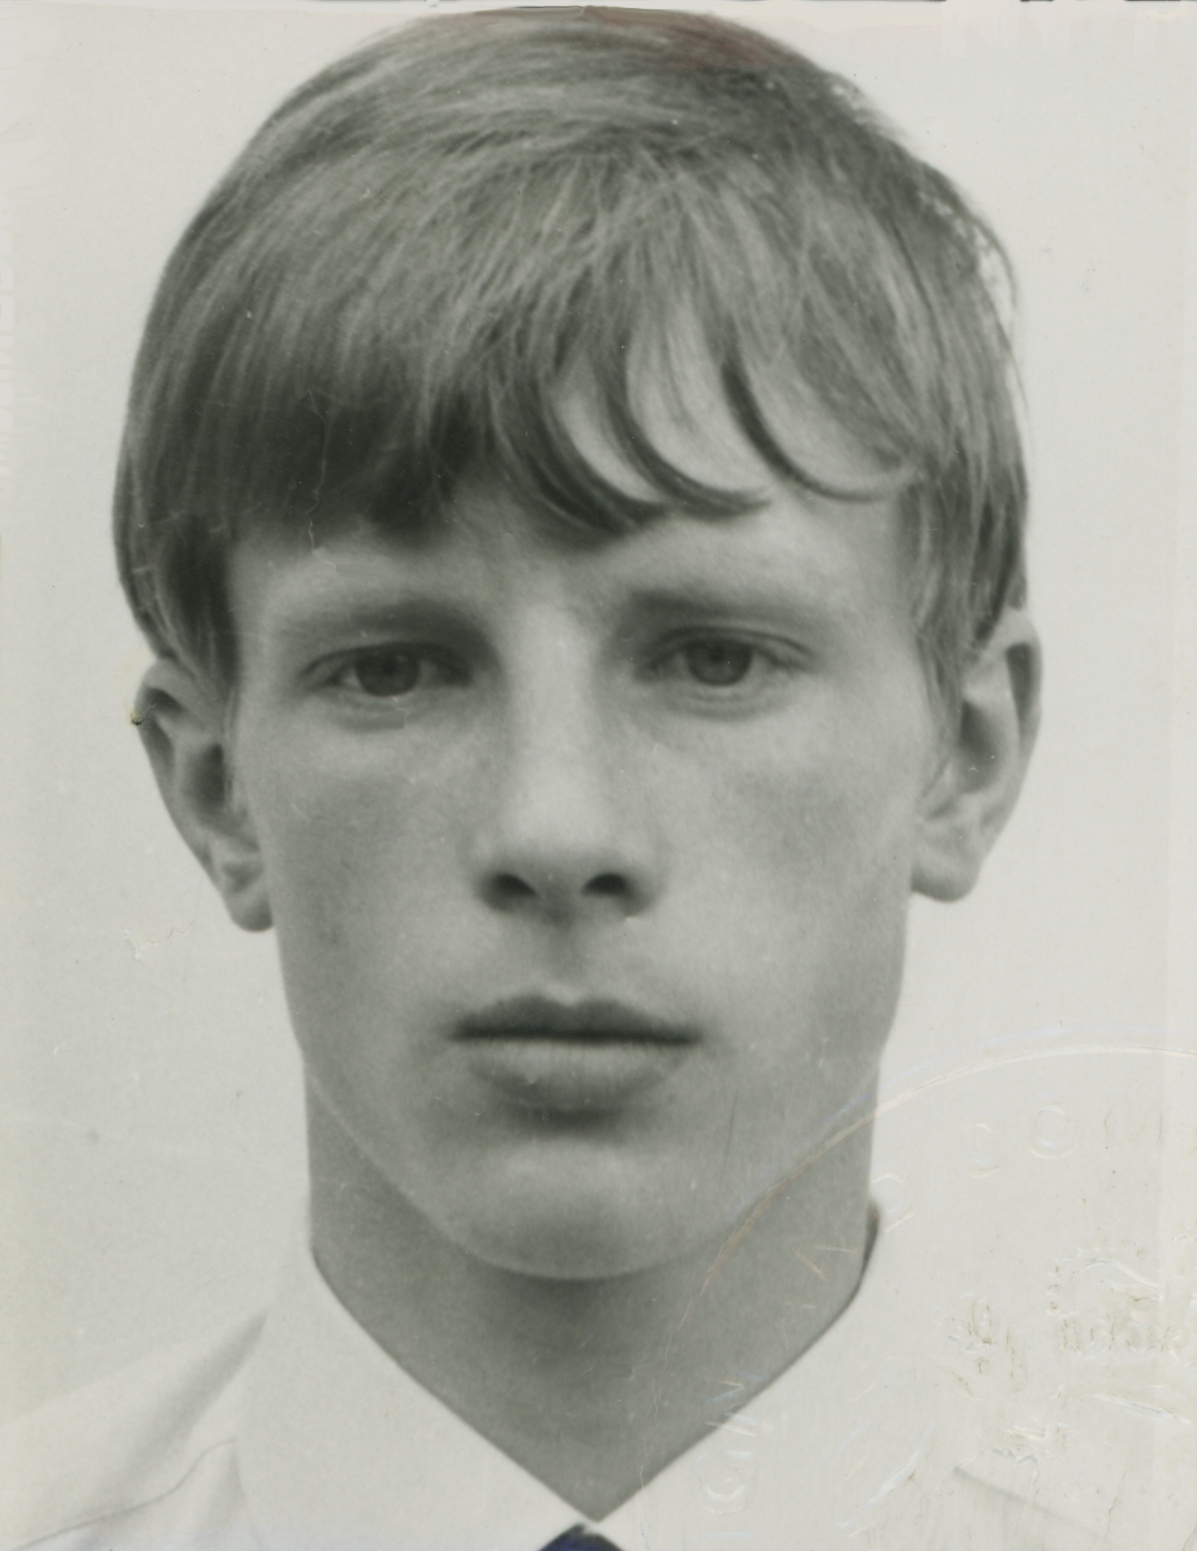 Passport photo at 16